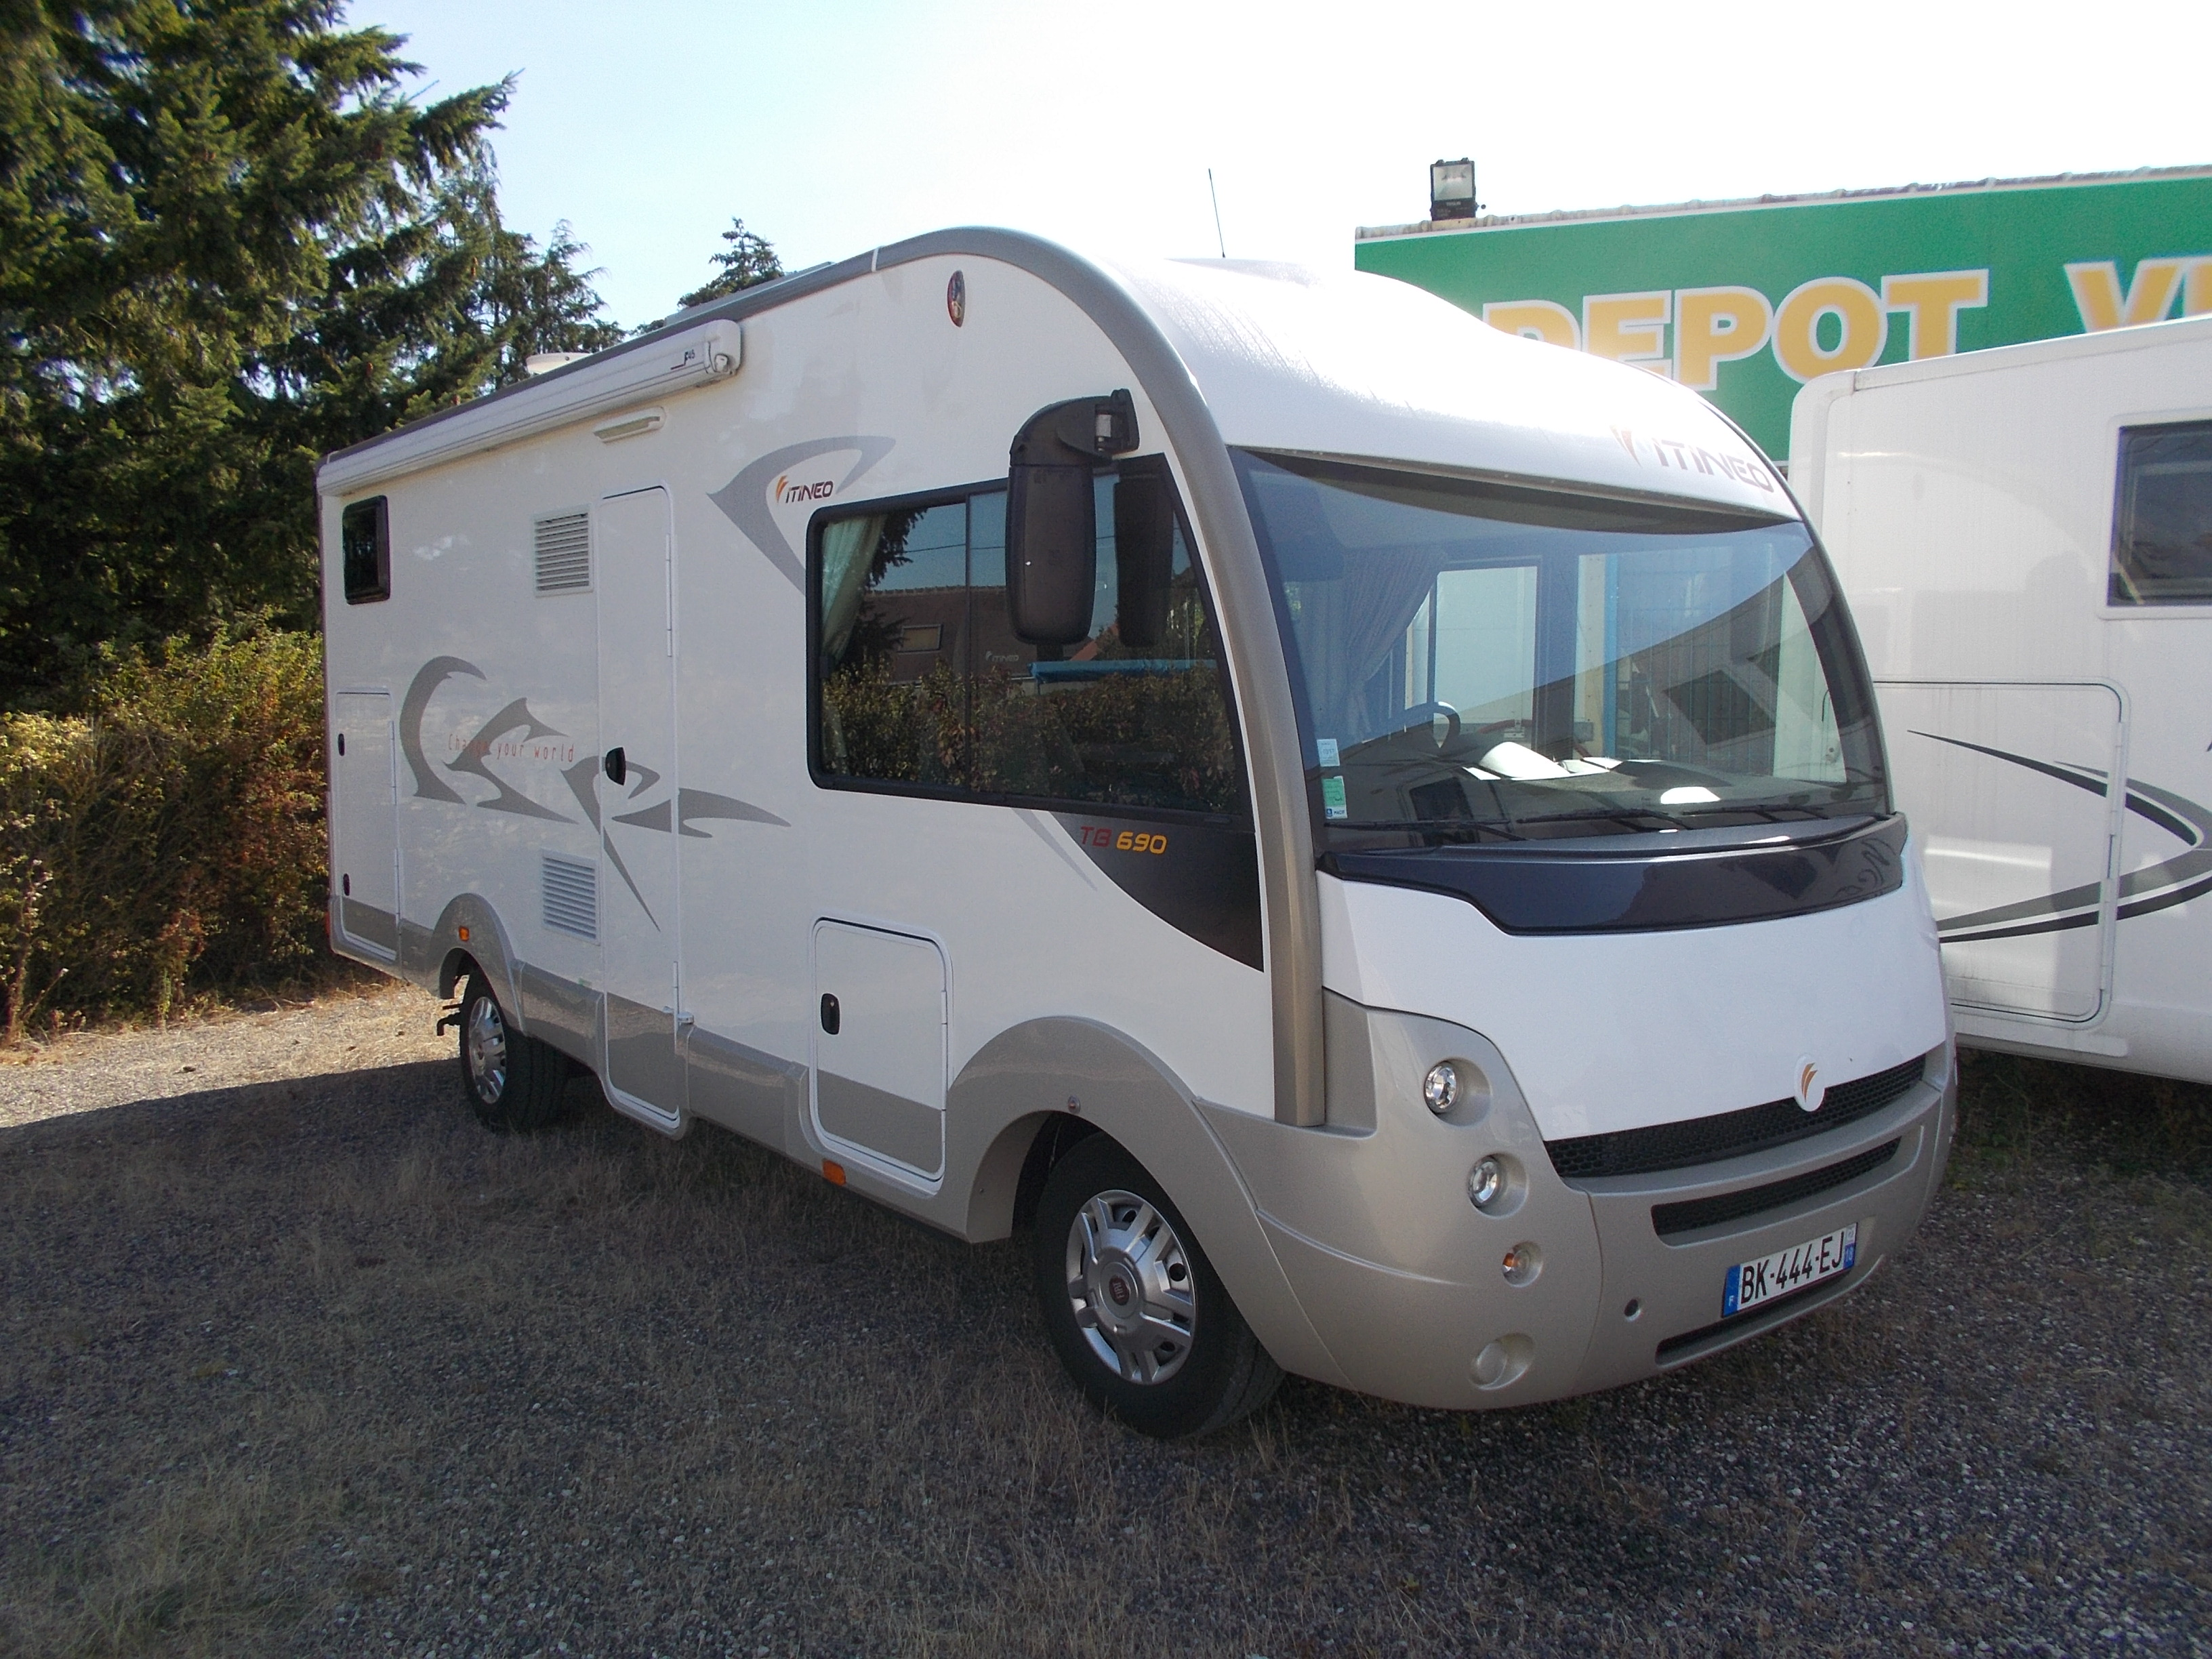 itineo tb 690 occasion porteur fiat ducato 130 cv camping car vendre en loiret 45 ref 65408. Black Bedroom Furniture Sets. Home Design Ideas